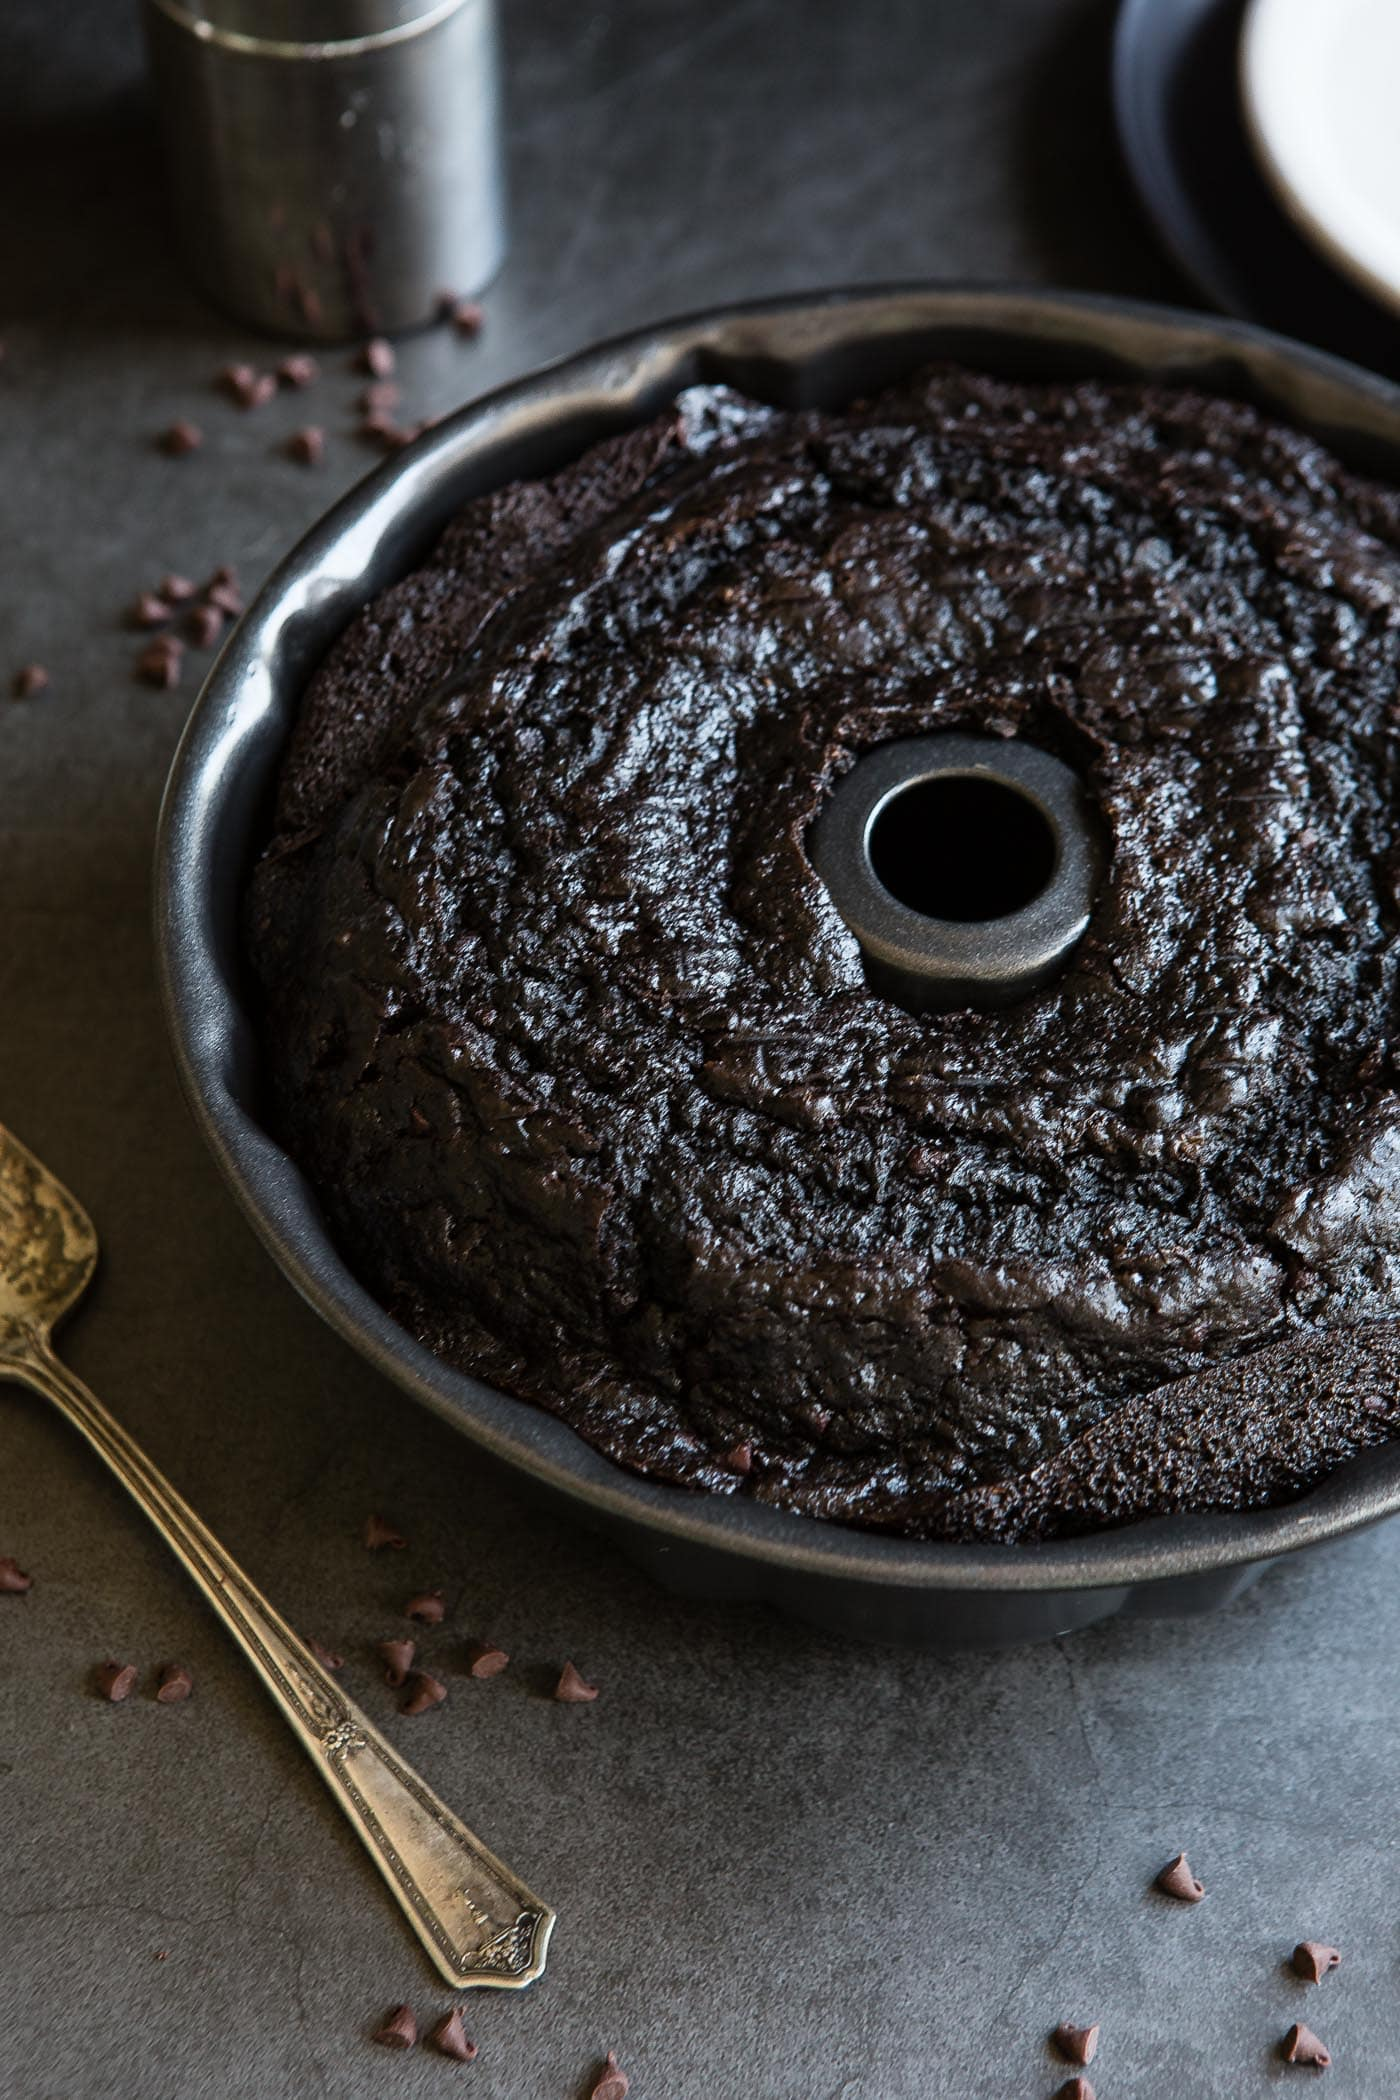 A baked zucchini chocolate bundt cake in the bundt pan. Bits of chocolate and a cake server are next to the cake.